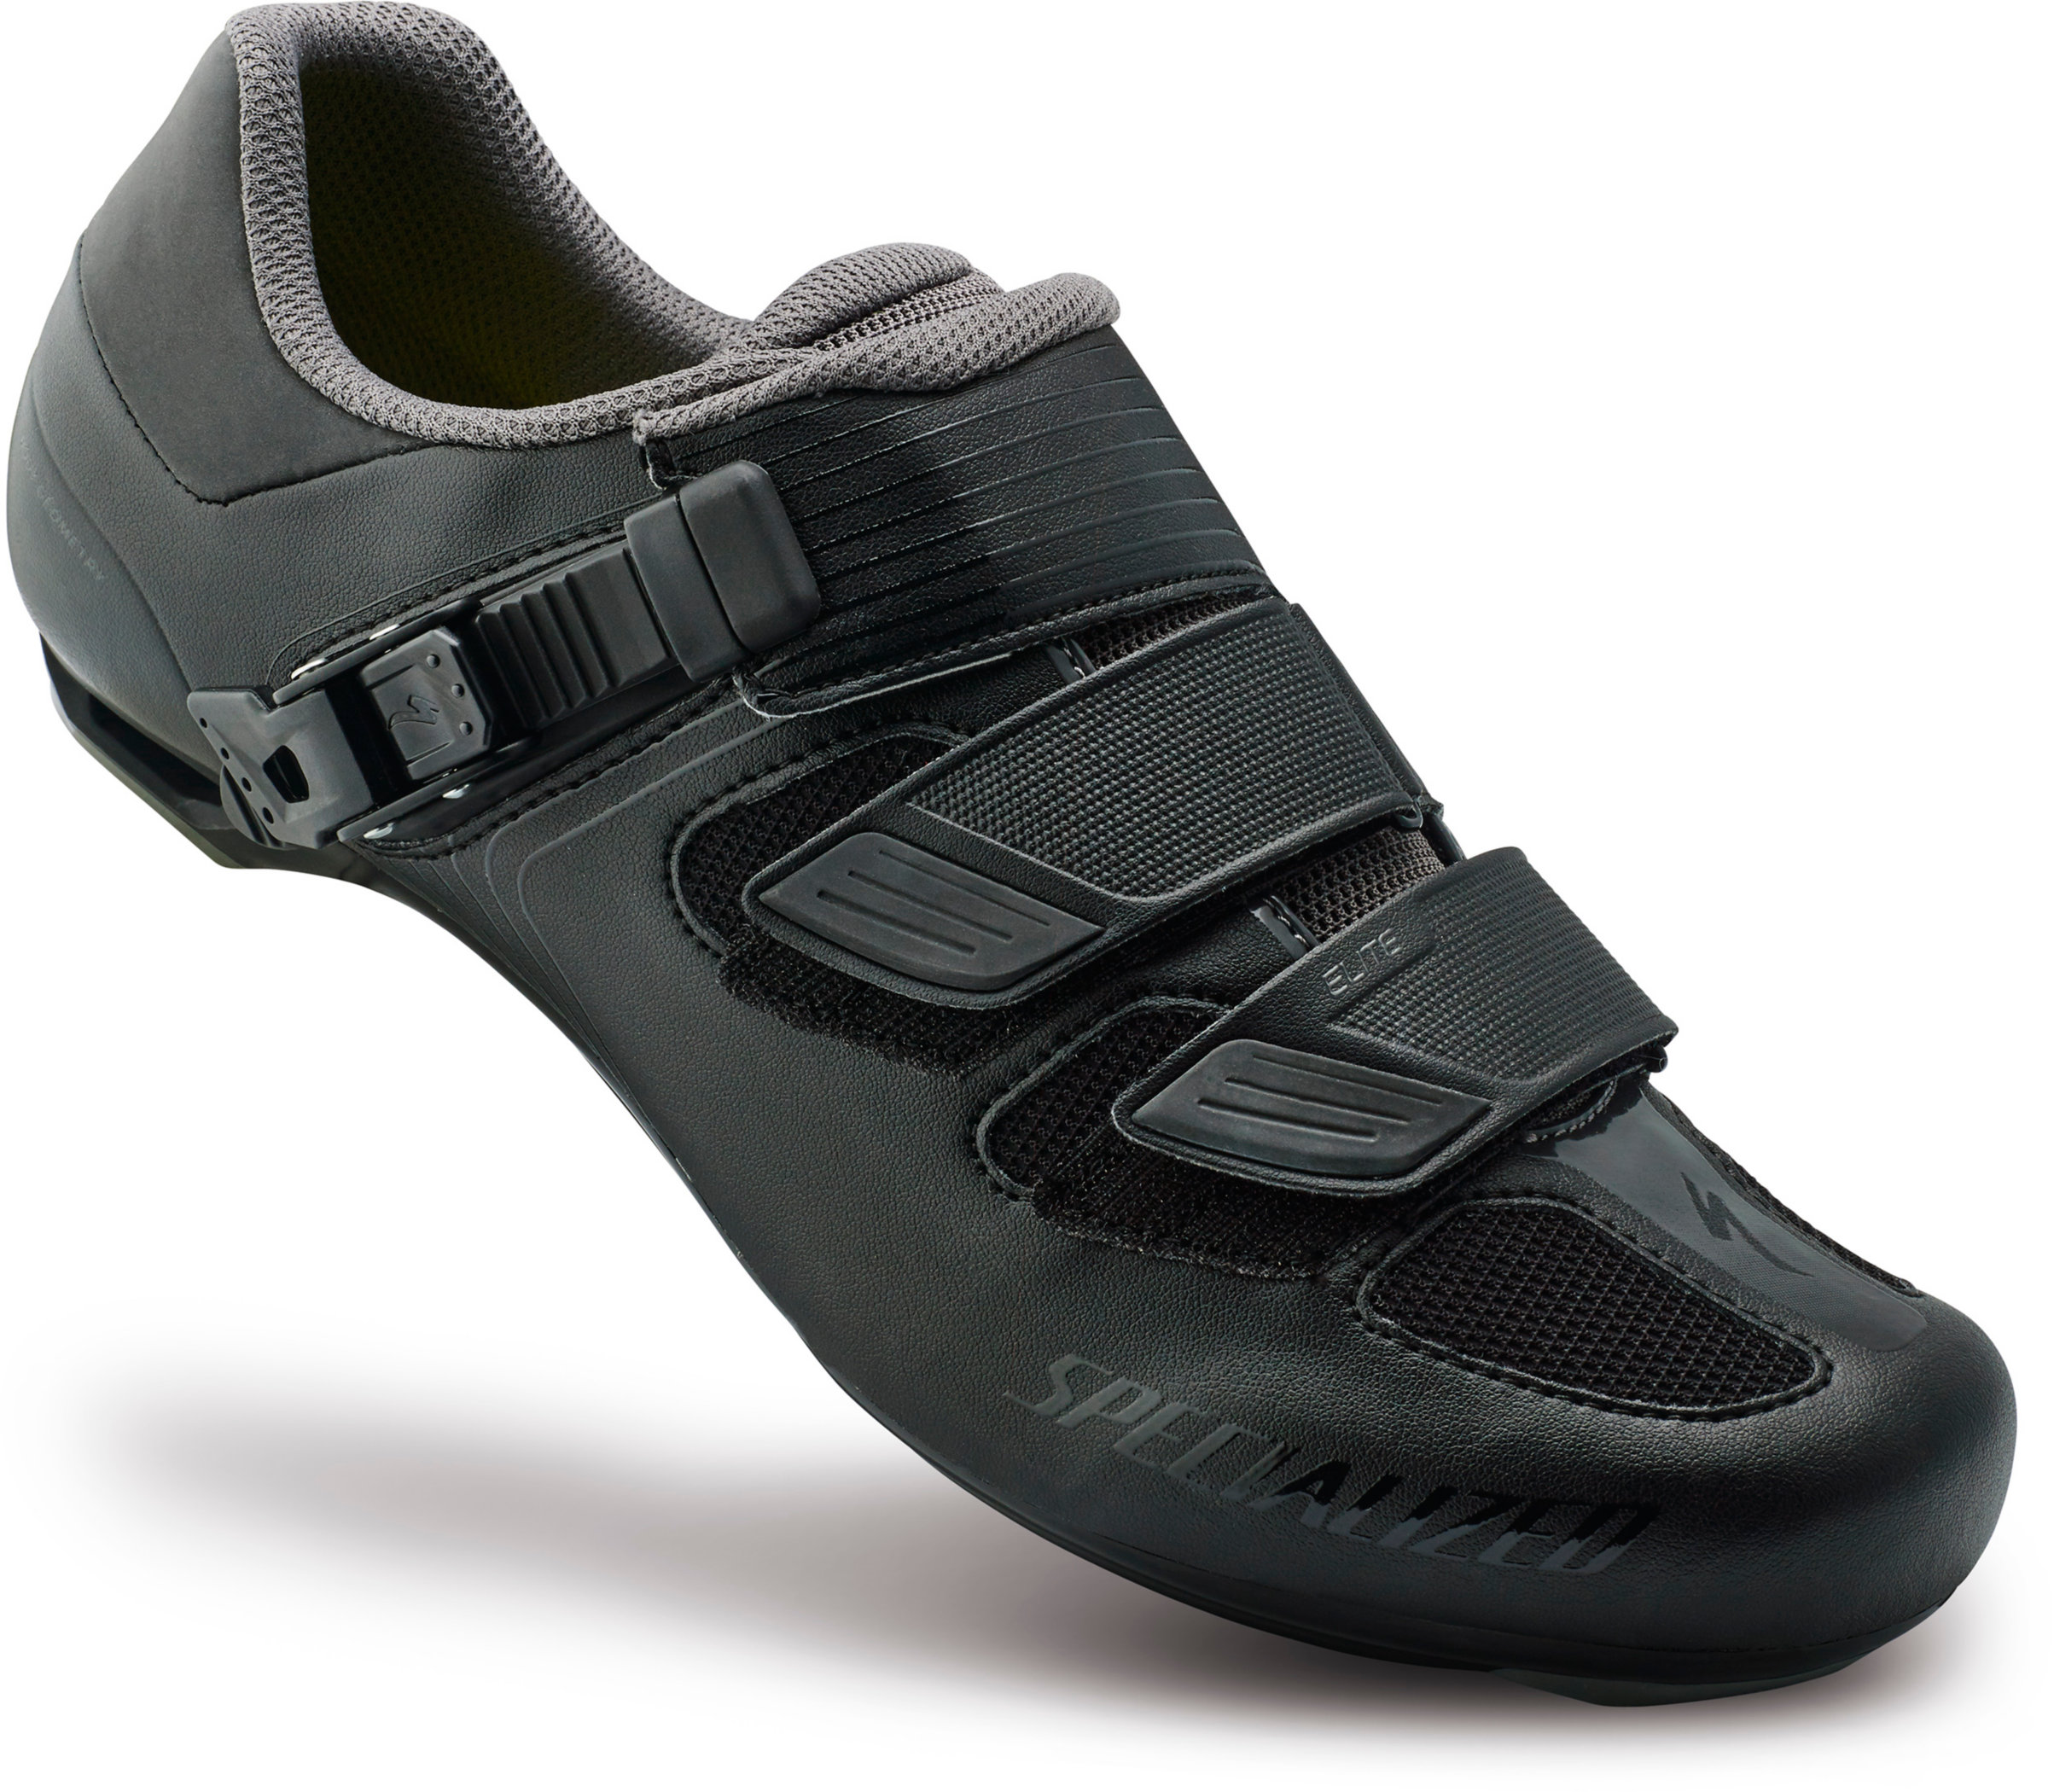 SPECIALIZED ELITE RD SHOE BLK 38/5.75 - SPECIALIZED ELITE RD SHOE BLK 38/5.75